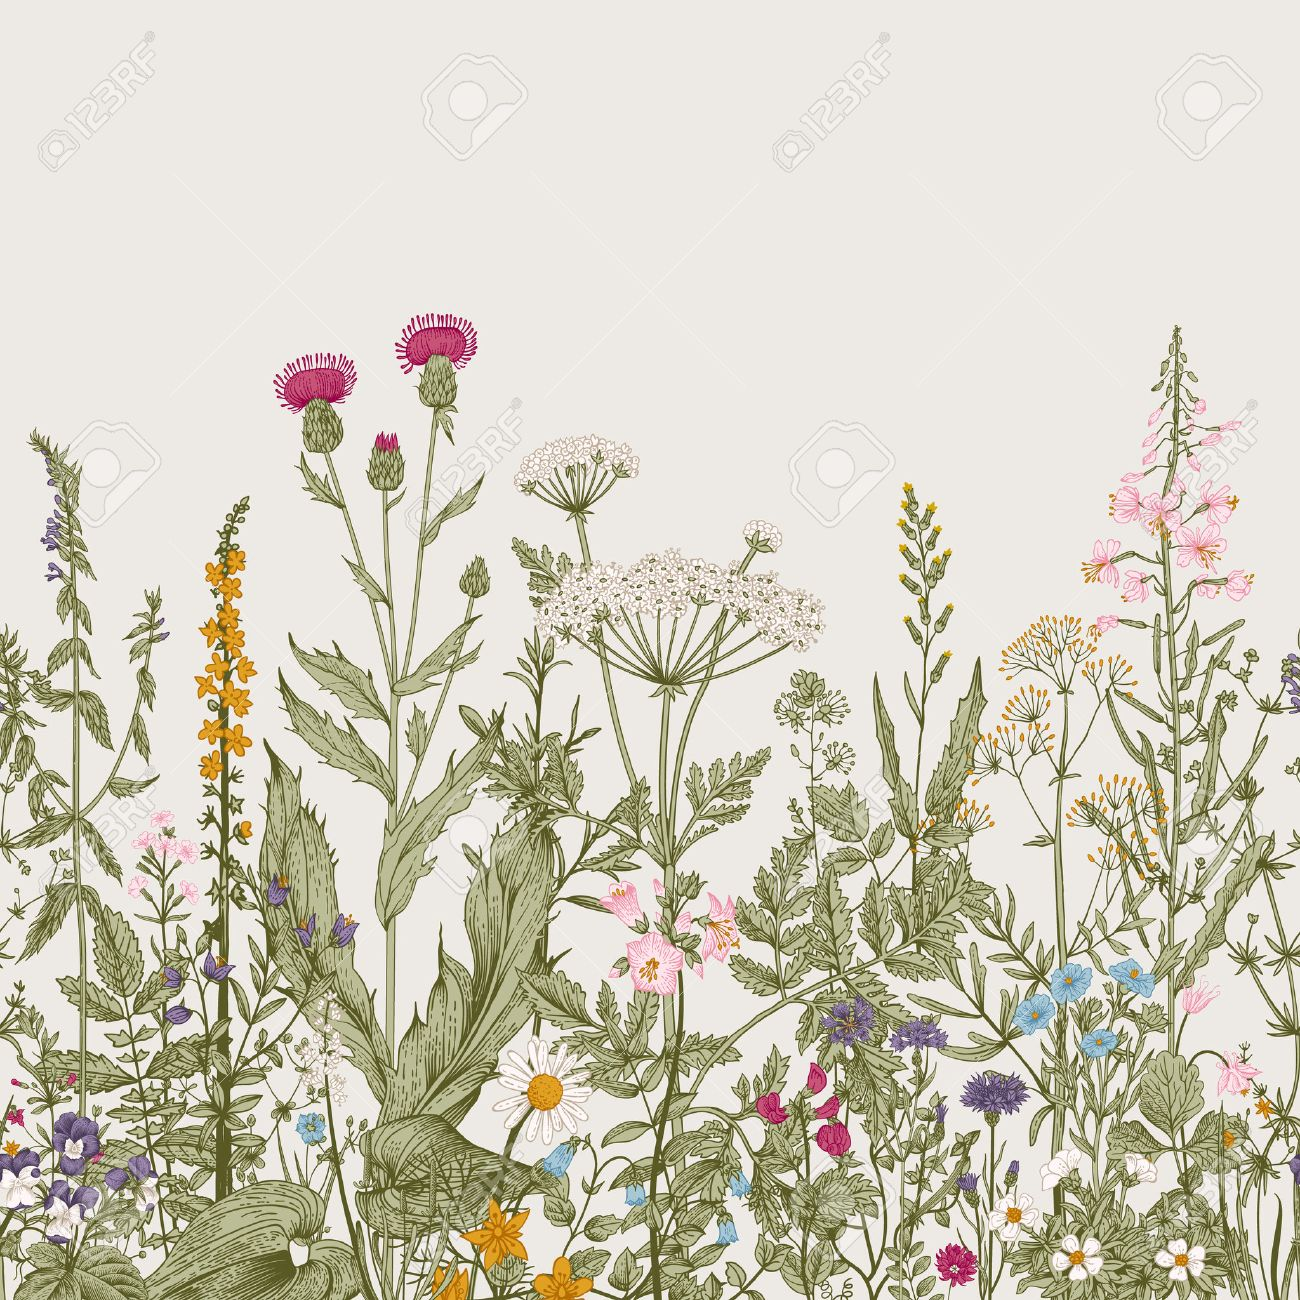 Vector seamless floral border. Herbs and wild flowers. Botanical Illustration engraving style. Colorful - 52411615